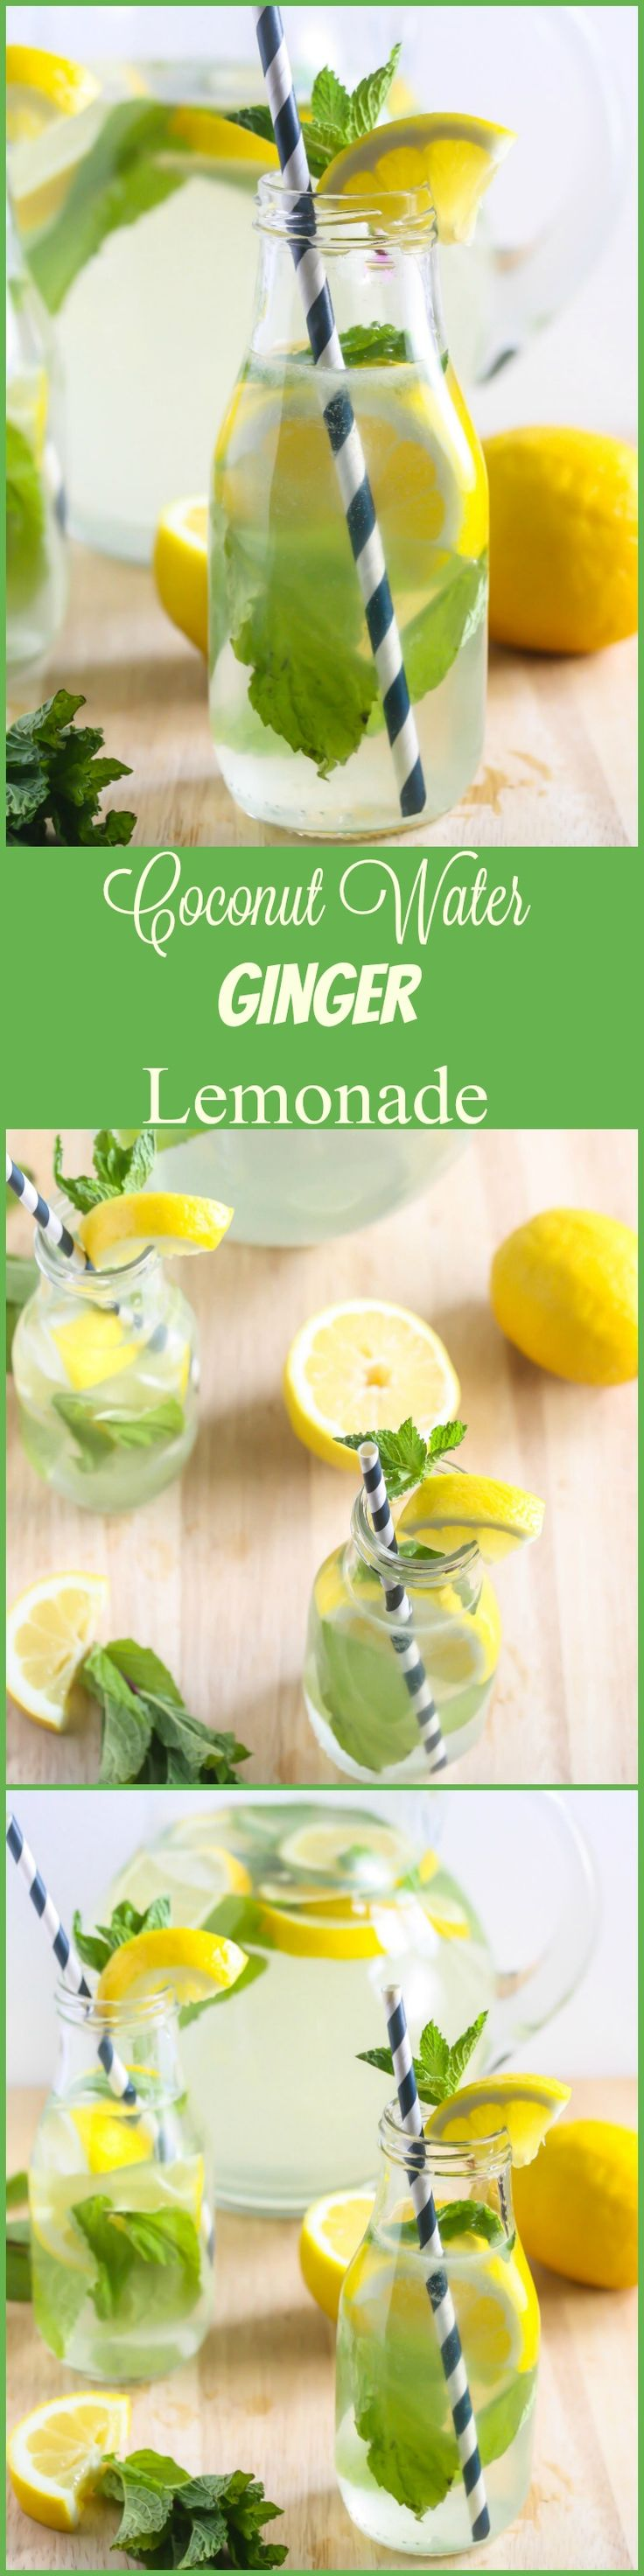 You can enjoy this refreshing Coconut Water Ginger Lemonade all year long! laurenkellynutrition.com